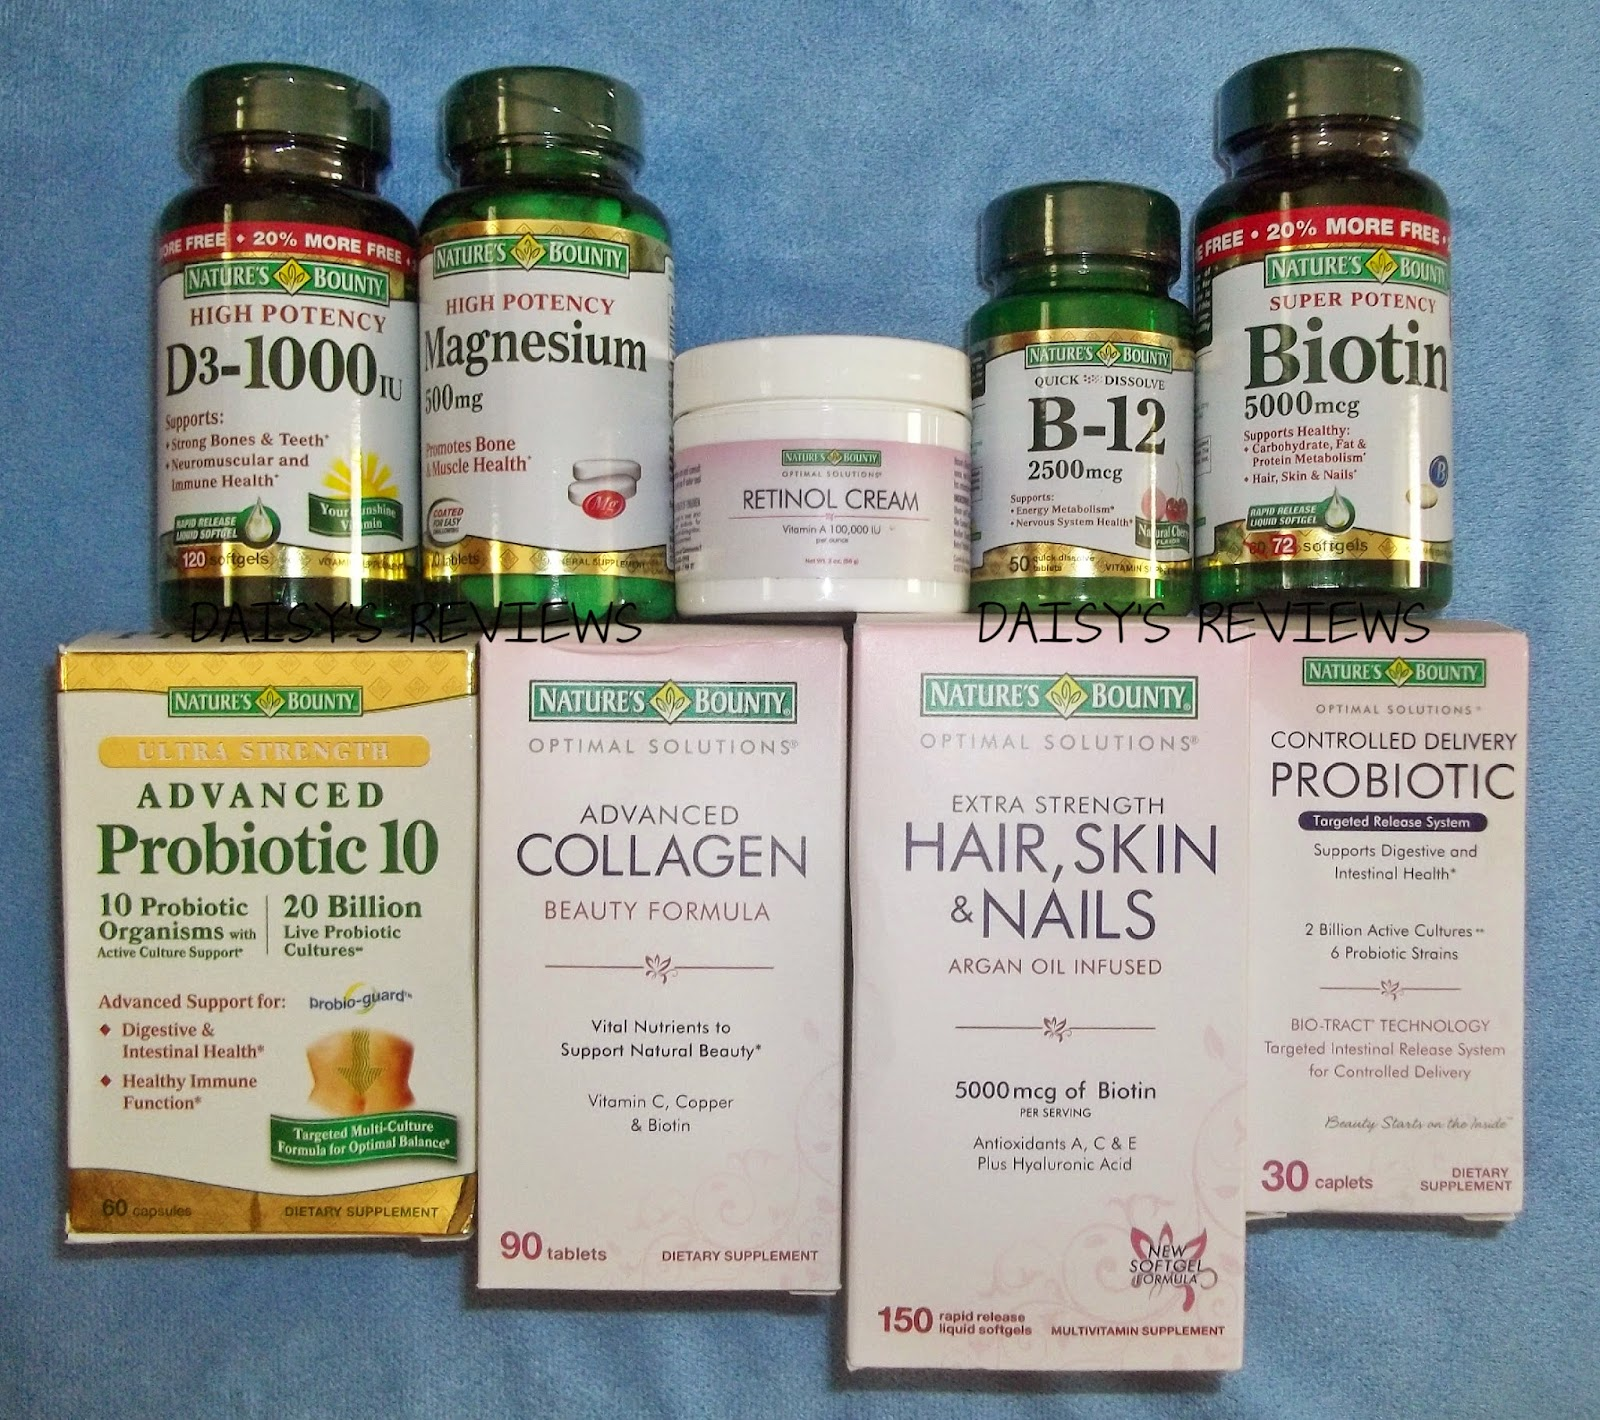 Natures bounty vitamins reviews - I Was Sent To Review Nature S Bounty Vitamins Each Nature S Bounty Are Very Different I Was Sent A Couple Of Nature S Bounty Optimal Solutions